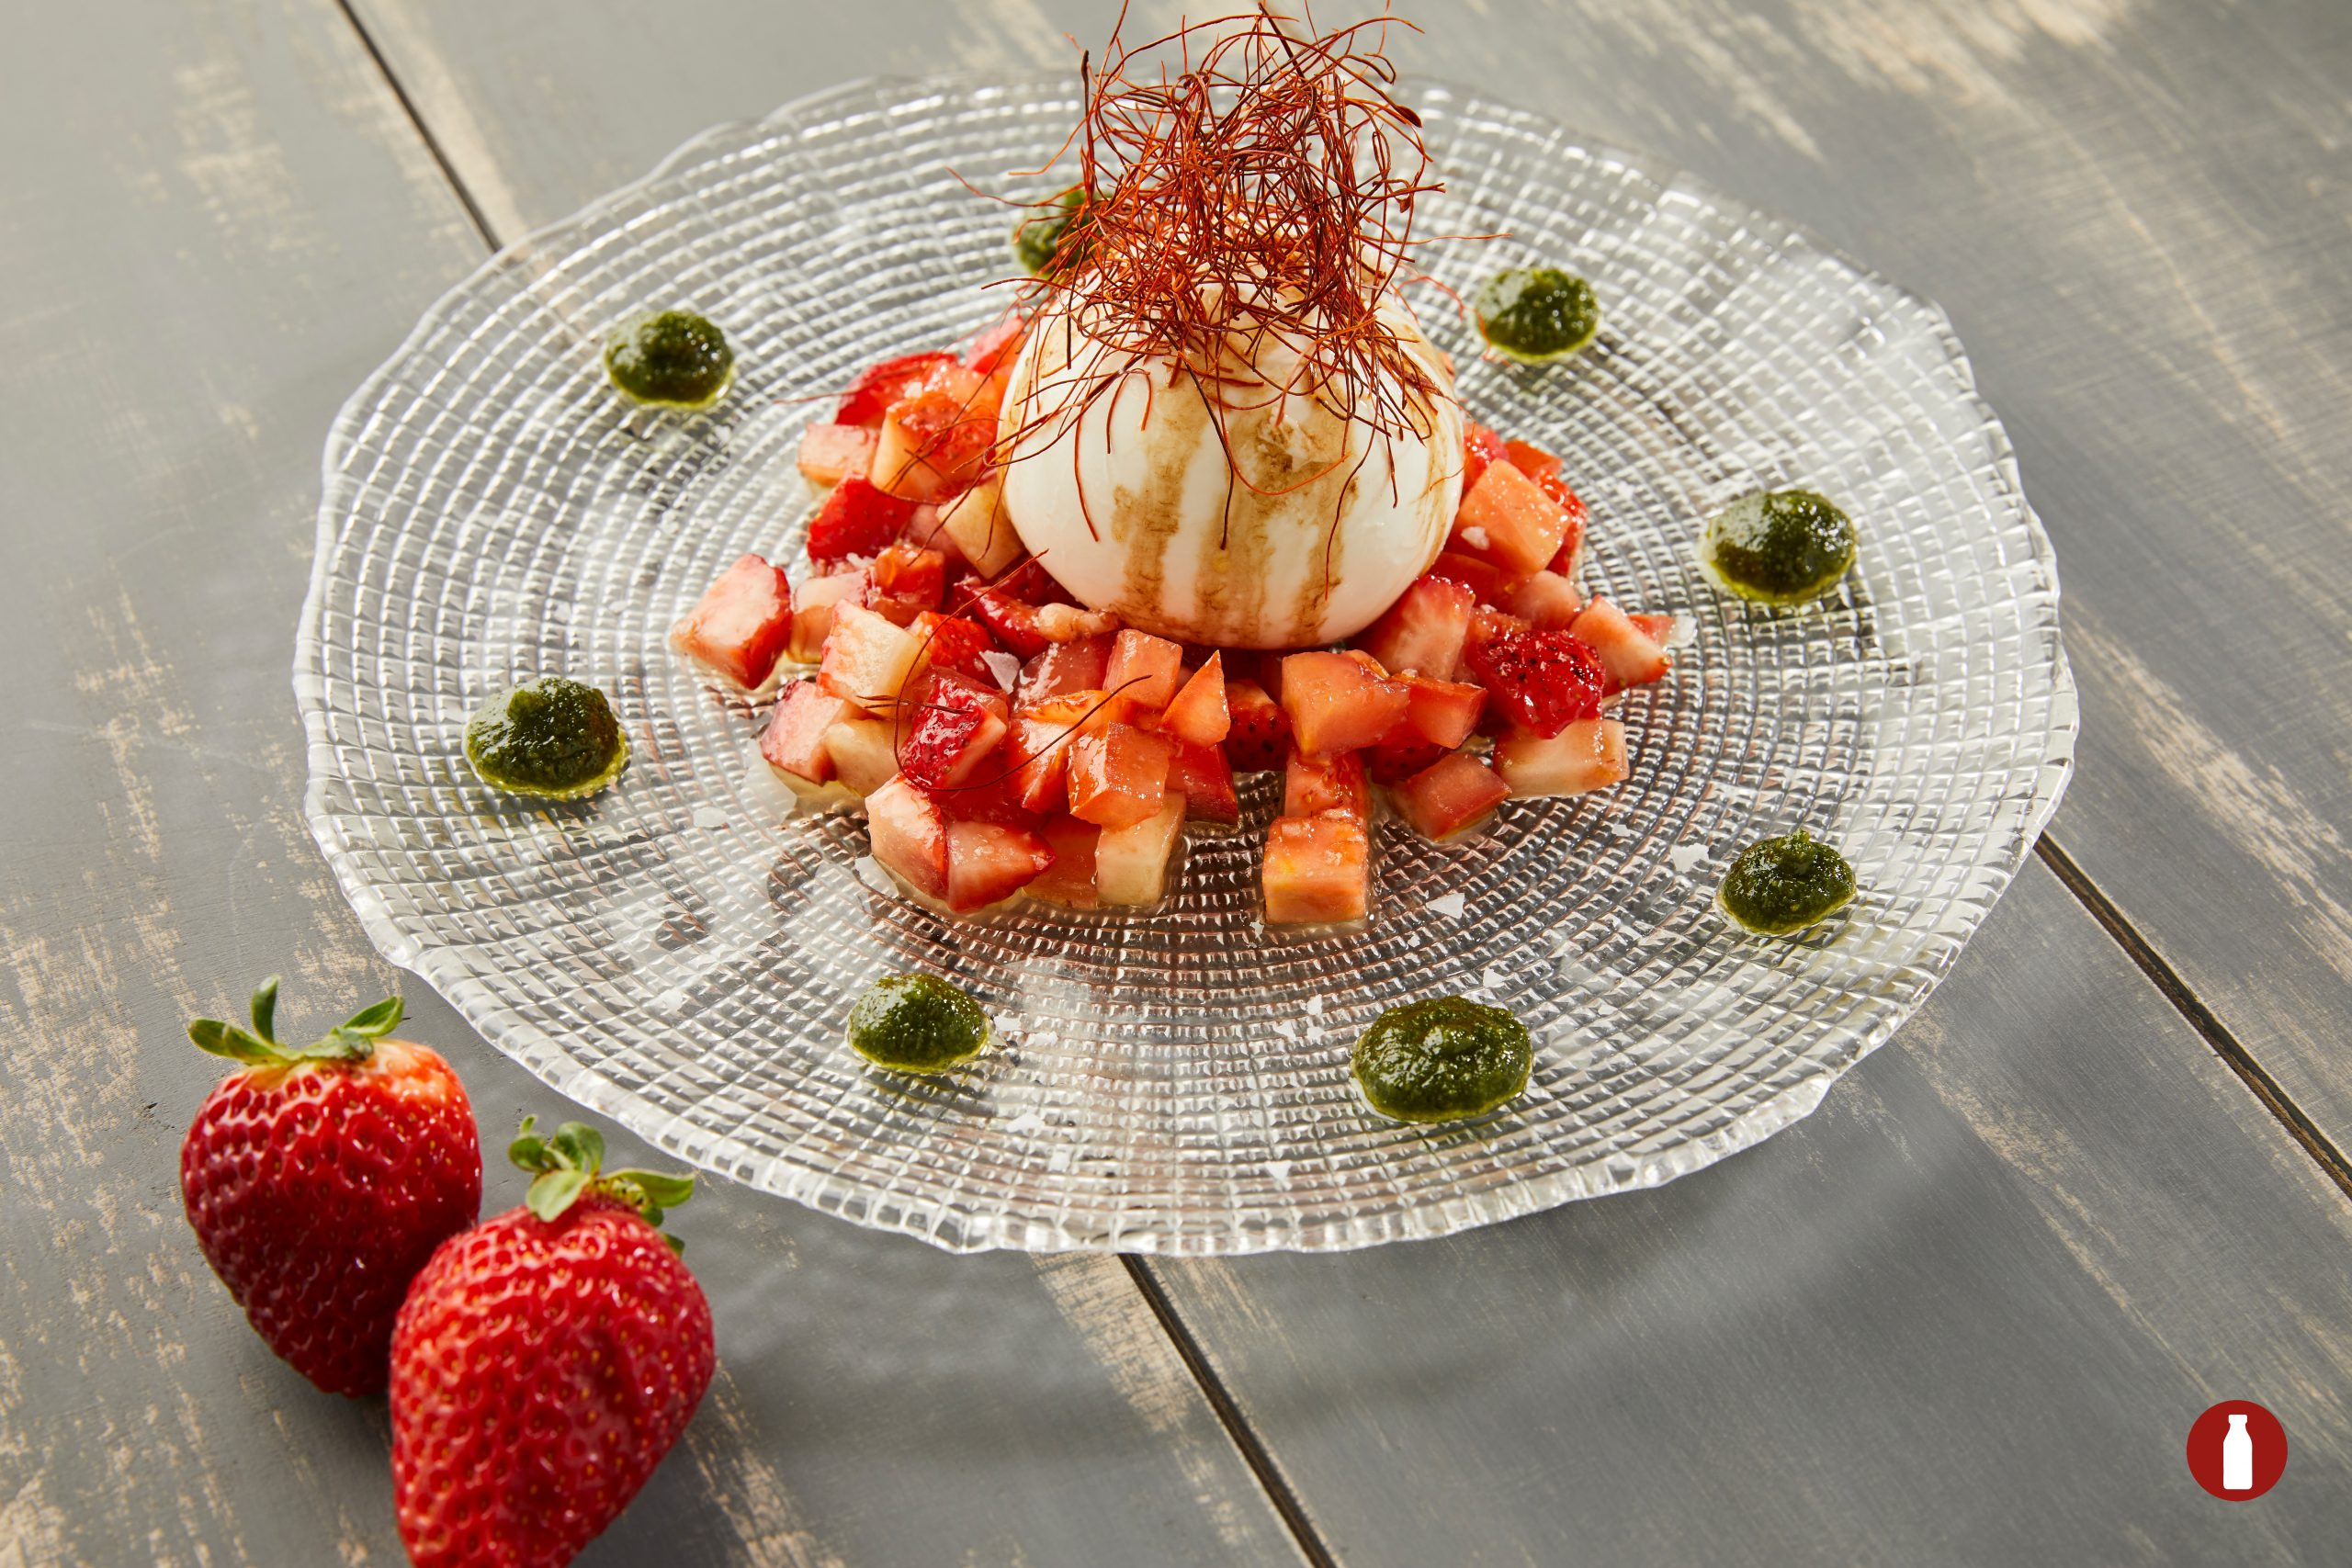 TALIAN BURRATA OVER A STRAWBERRY AND TOMATO TARTAR